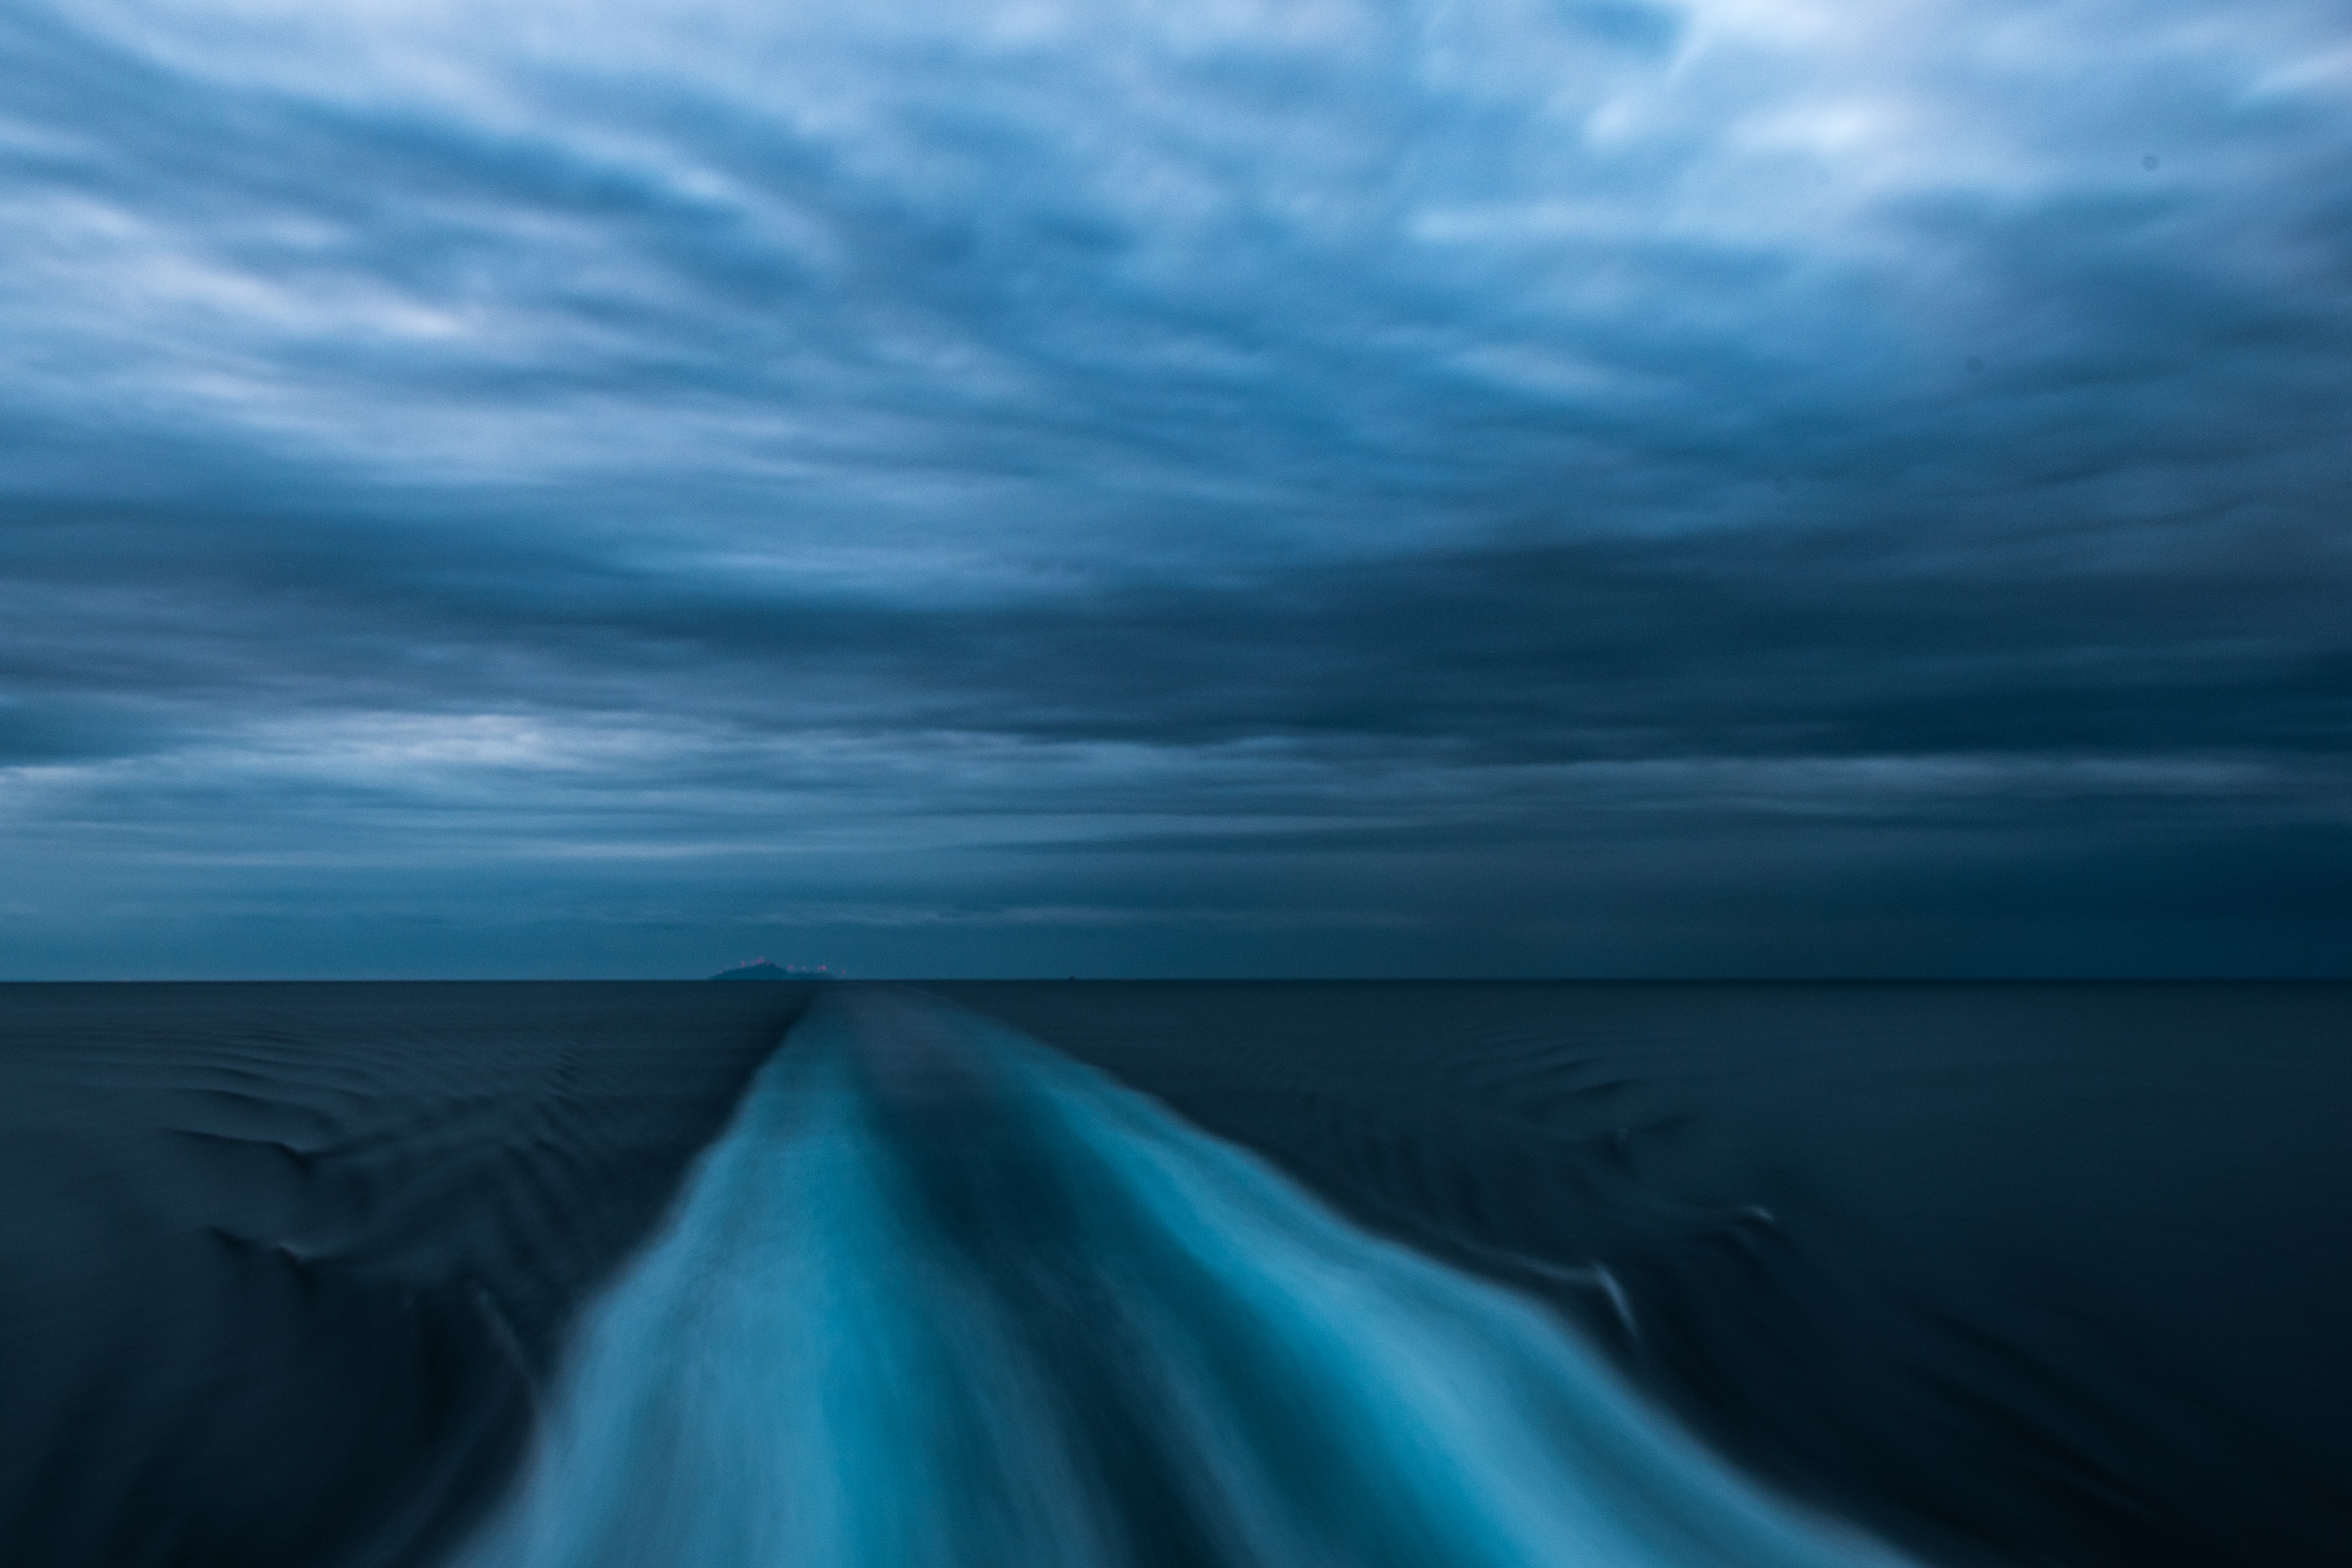 timelapse photography of sea